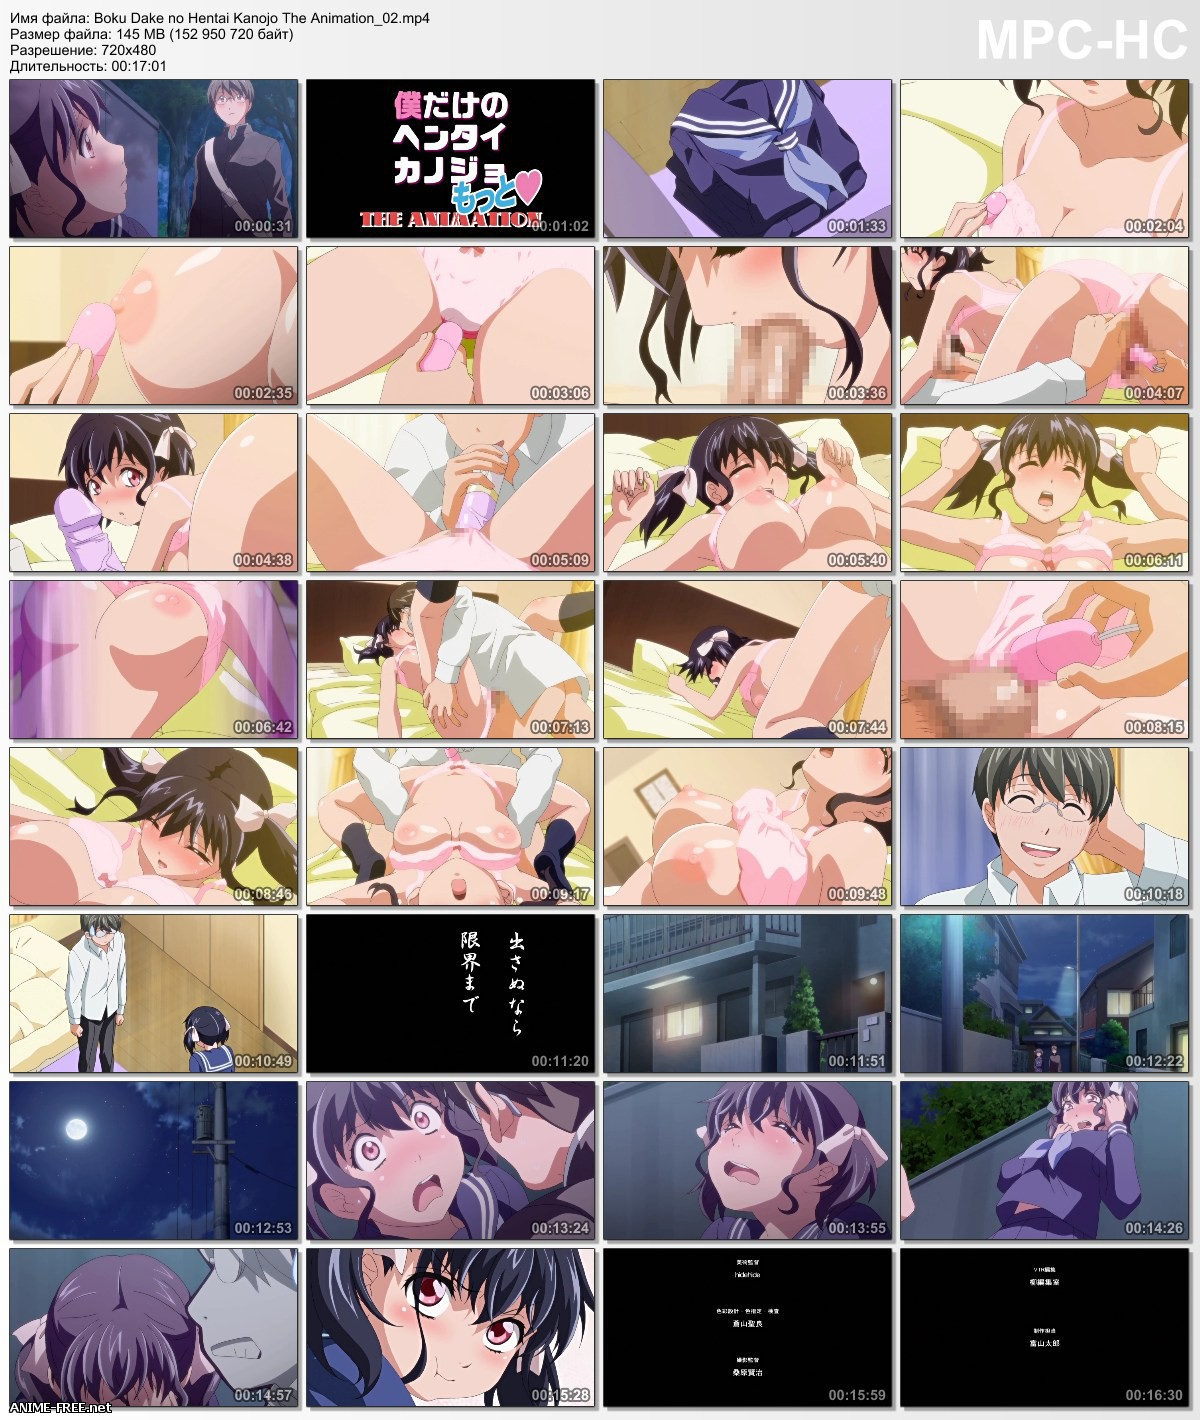 Boku Dake no Hentai Kanojo The Animation [Ep.1-2] [JAP,ENG,CHI] Anime Hentai